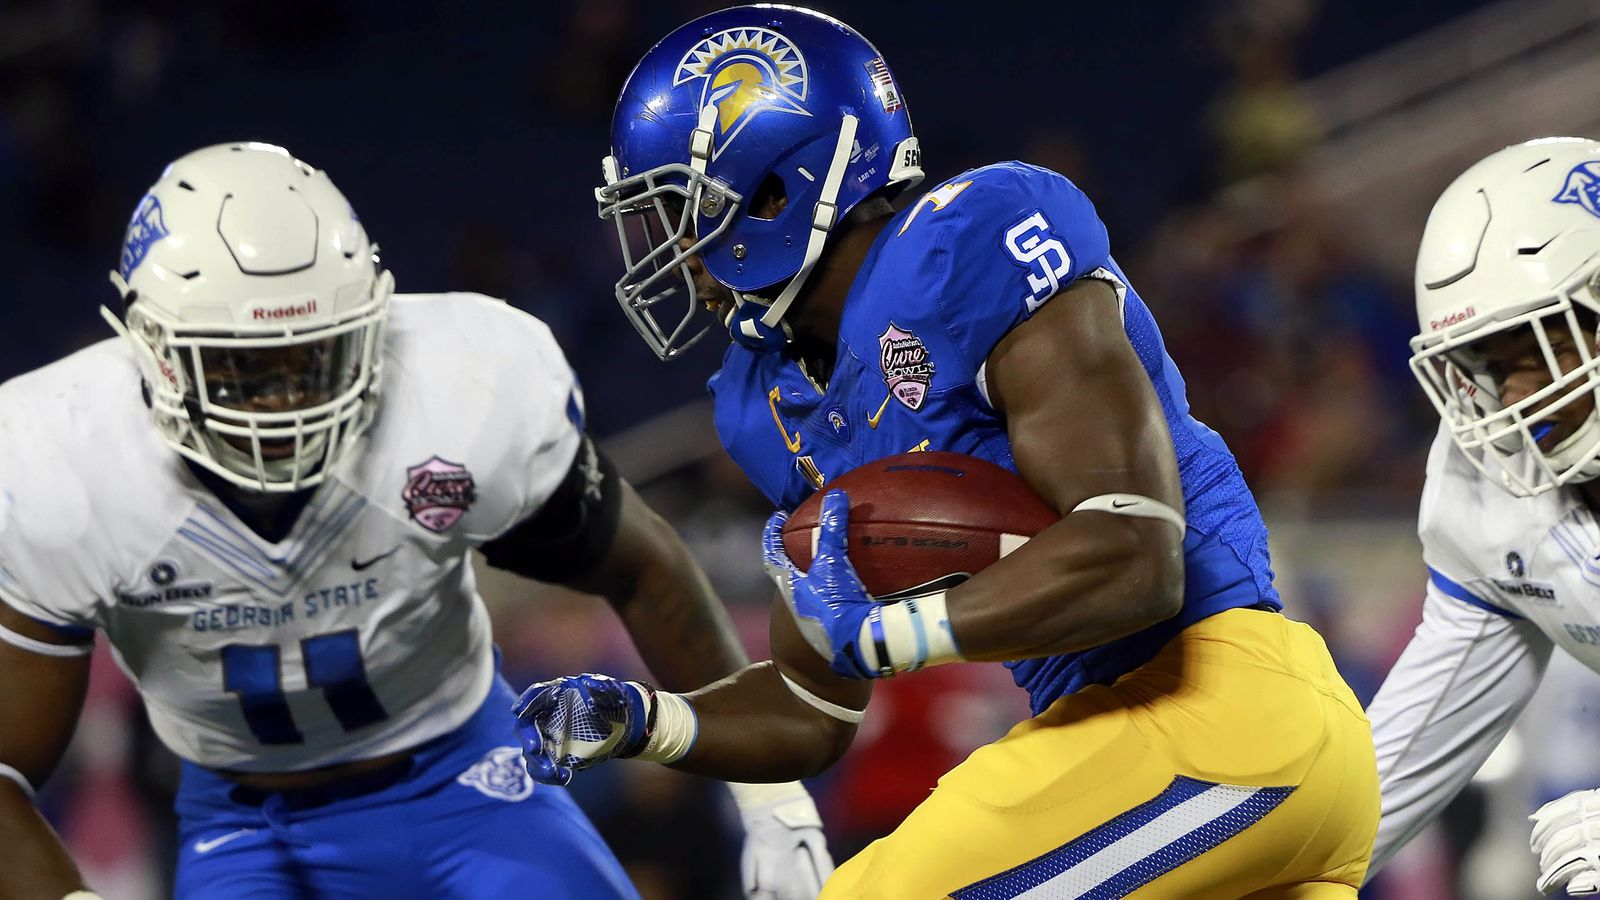 falcons saints box score college bowl game odds usa today